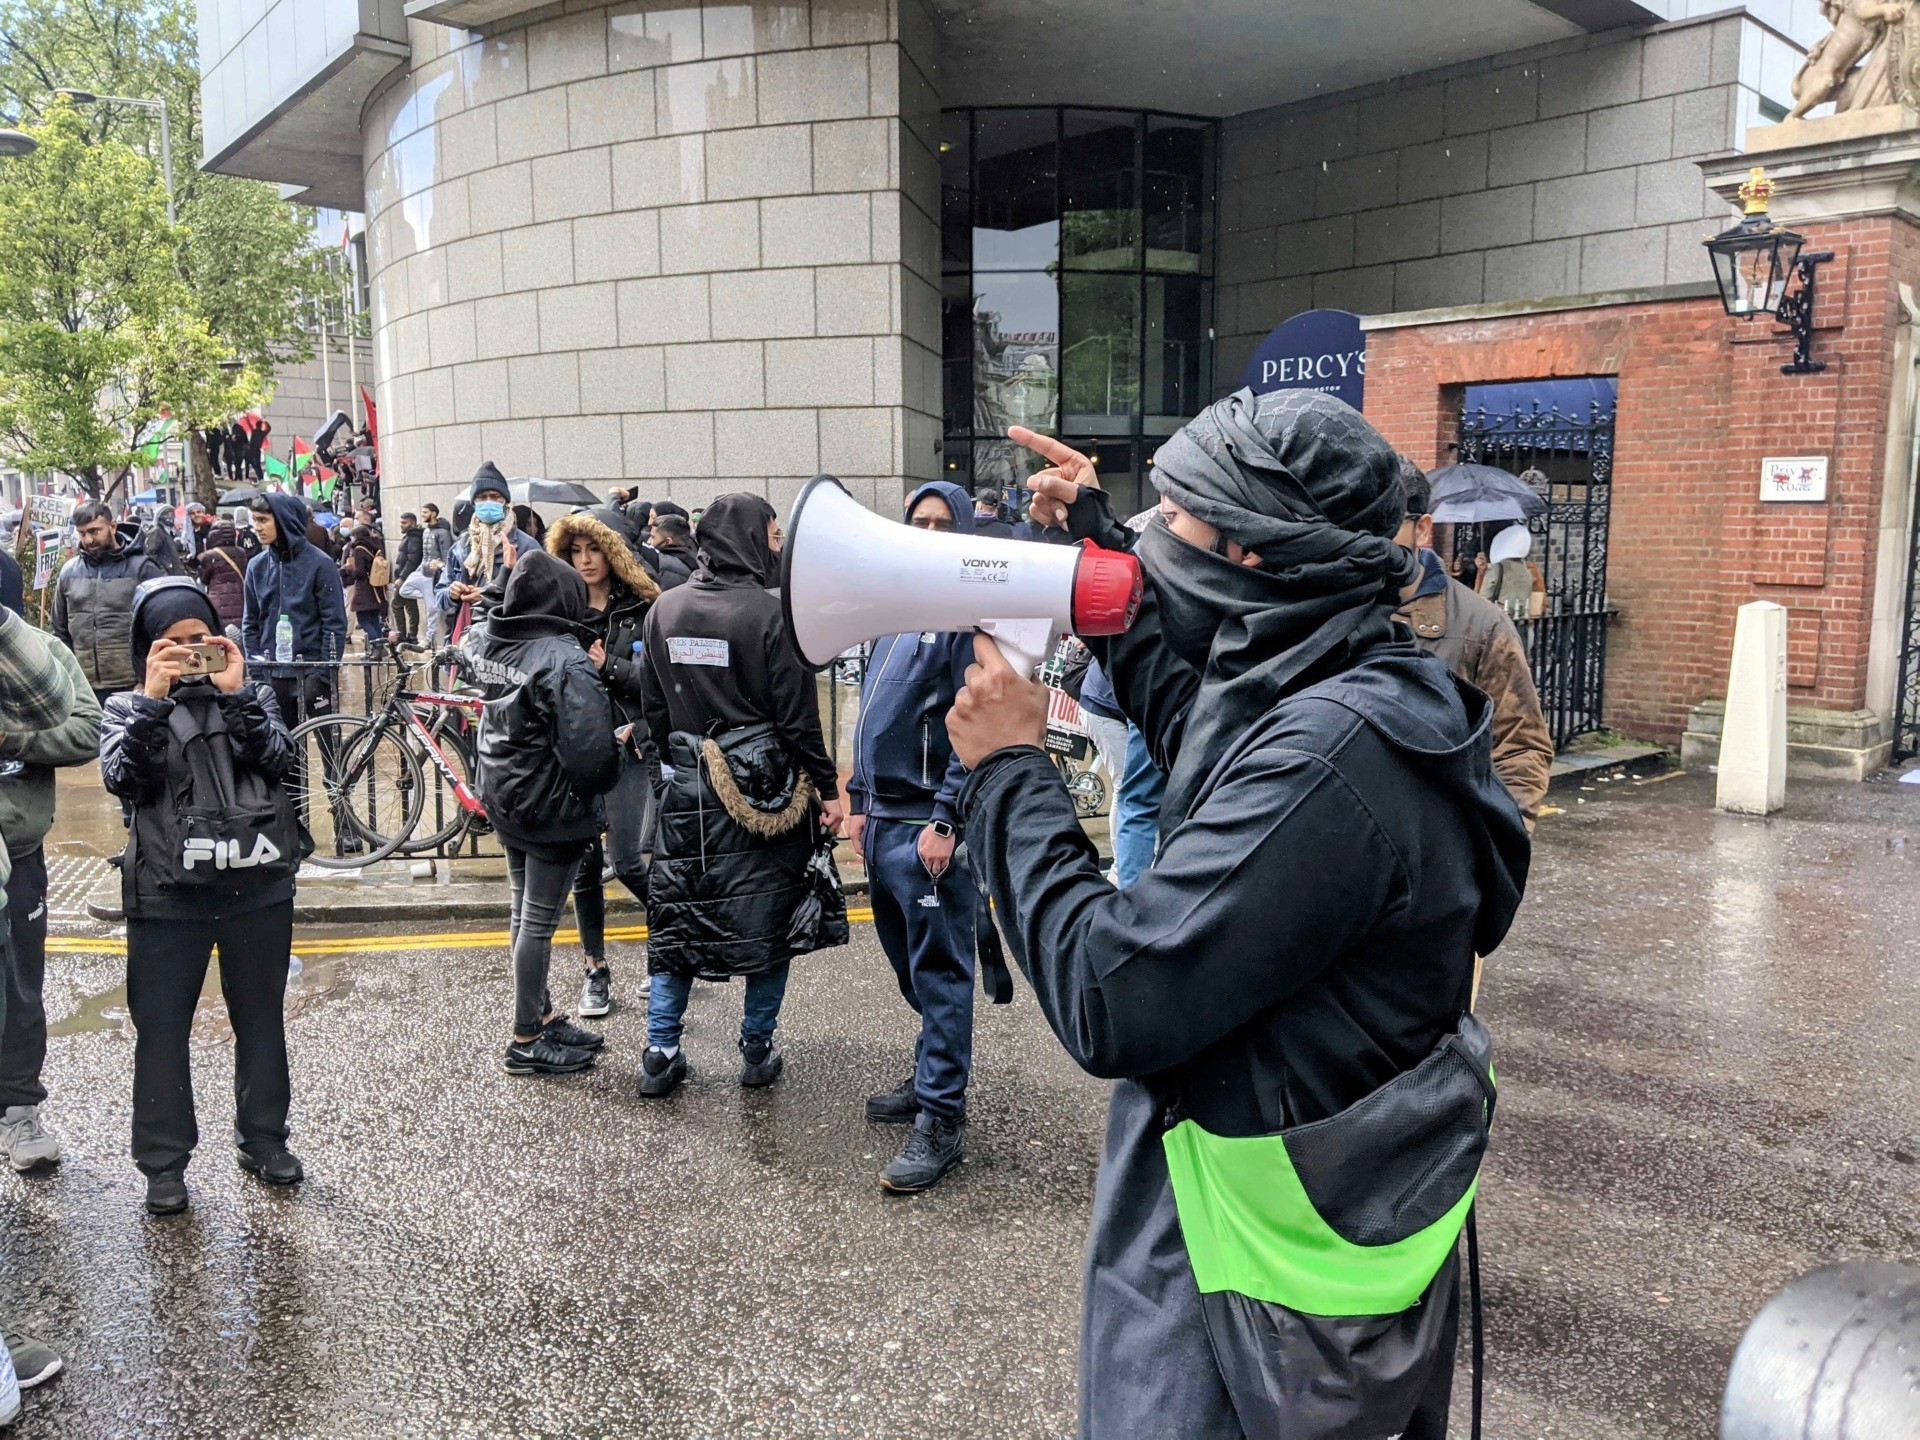 A protester is seen giving a speech with a bullhorn, at an anti-Israel protest in London. May 15th, 2021. Kurt Zindulka, Breitbart News